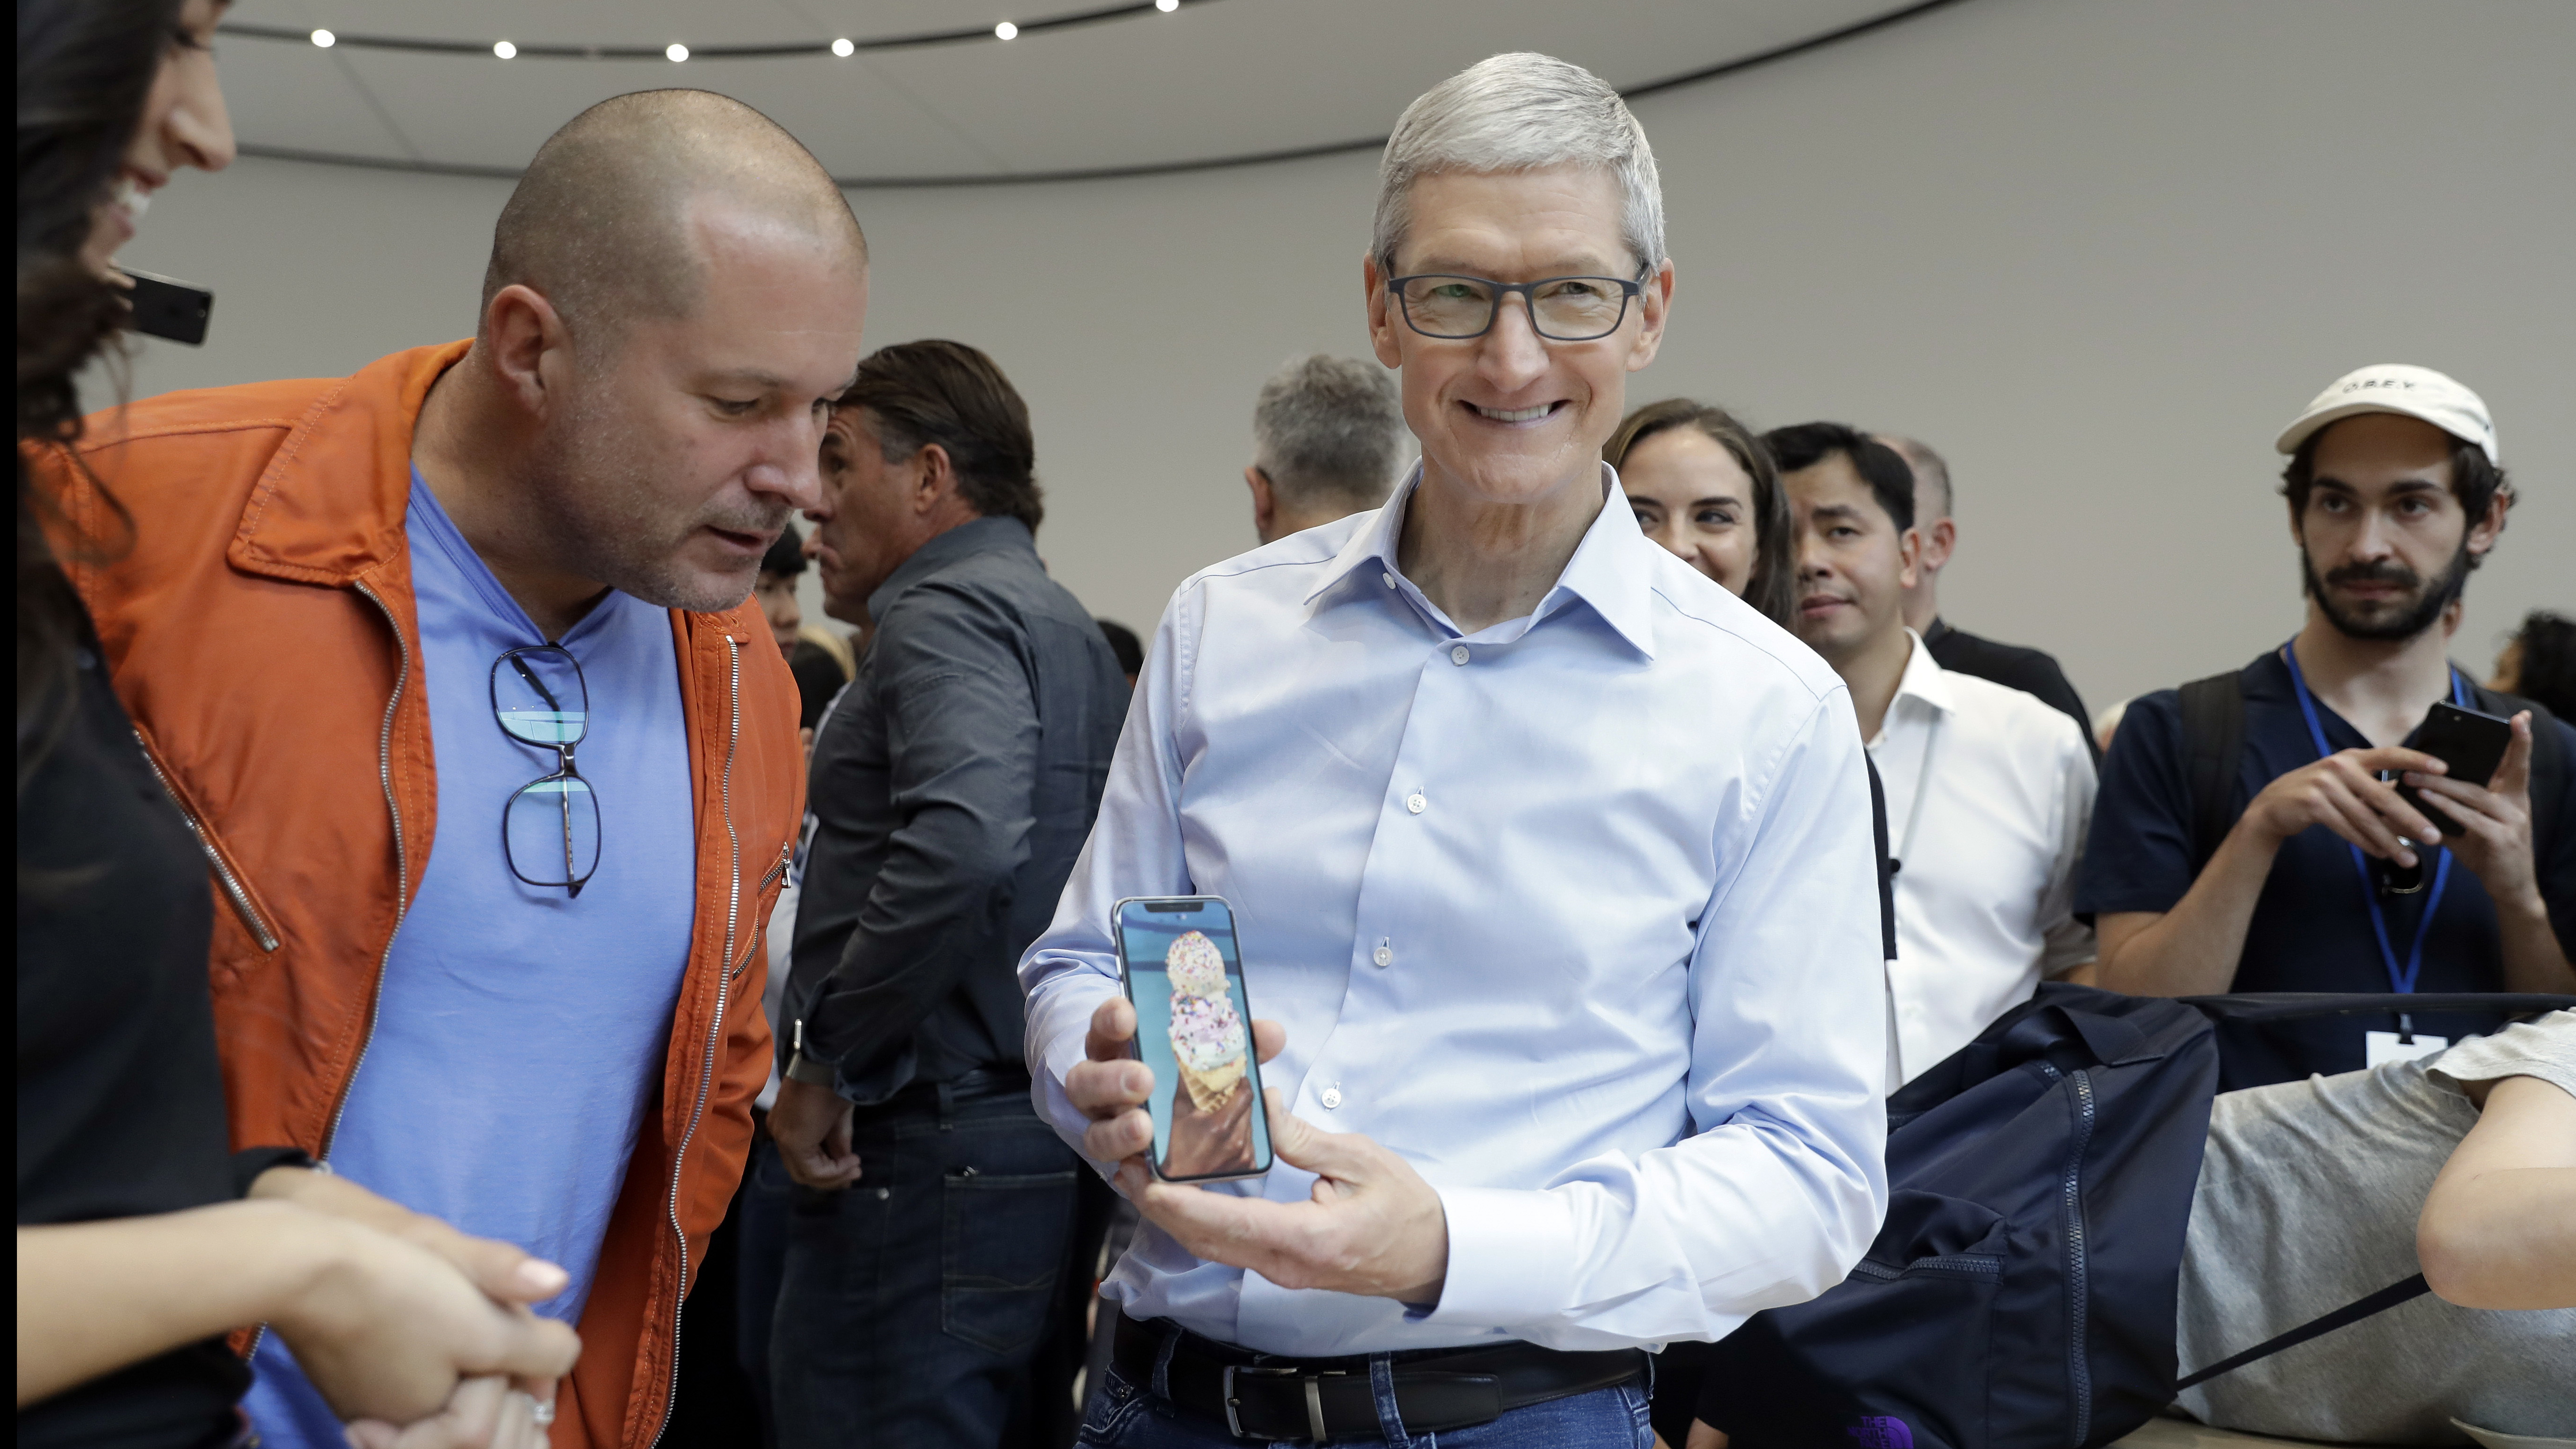 Apple CEO Tim Cook, right, and Jonathan Ive, Chief Design Officer shows the new iPhone X in the showroom after the new product announcement at the Steve Jobs Theater on the new Apple campus on Tuesday, Sept. 12, 2017, in Cupertino, Calif. (AP Photo/Marcio Jose Sanchez)